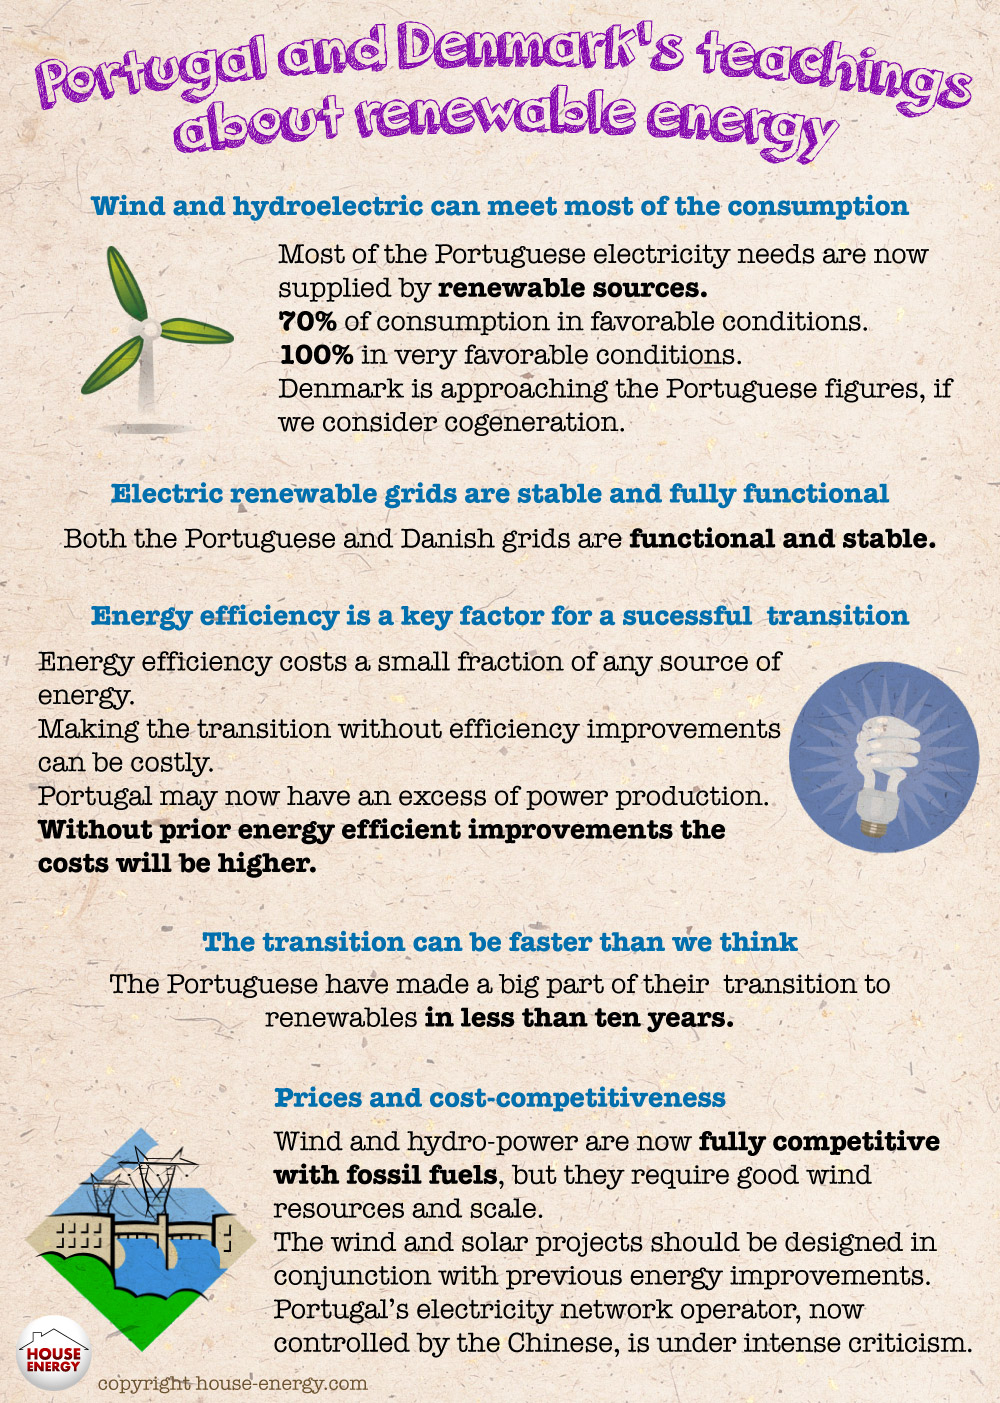 Portugal and Denmark renewable energy